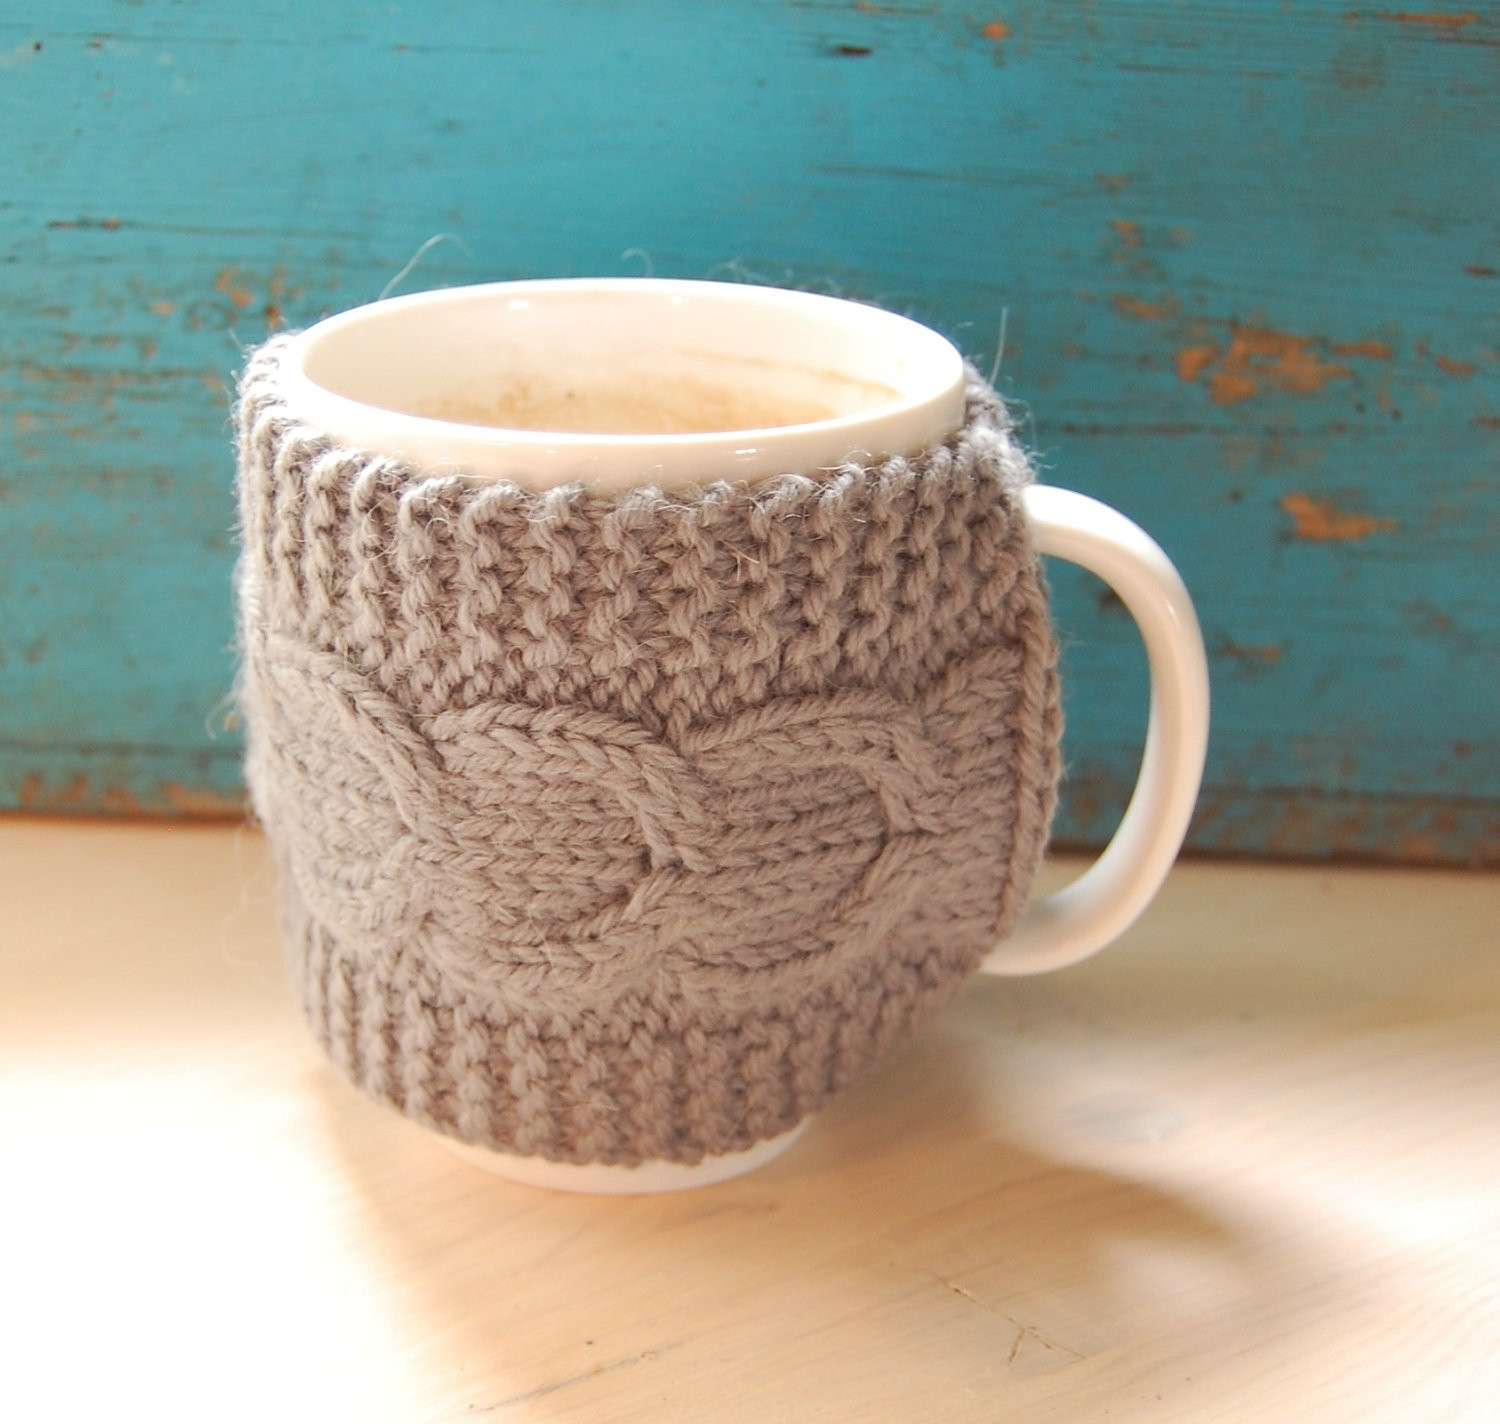 Inspirational Knit Coffee Mug Cozy Mug Warmer with Cable Pattern by Coffee Cup Cozy Of Awesome 47 Images Coffee Cup Cozy